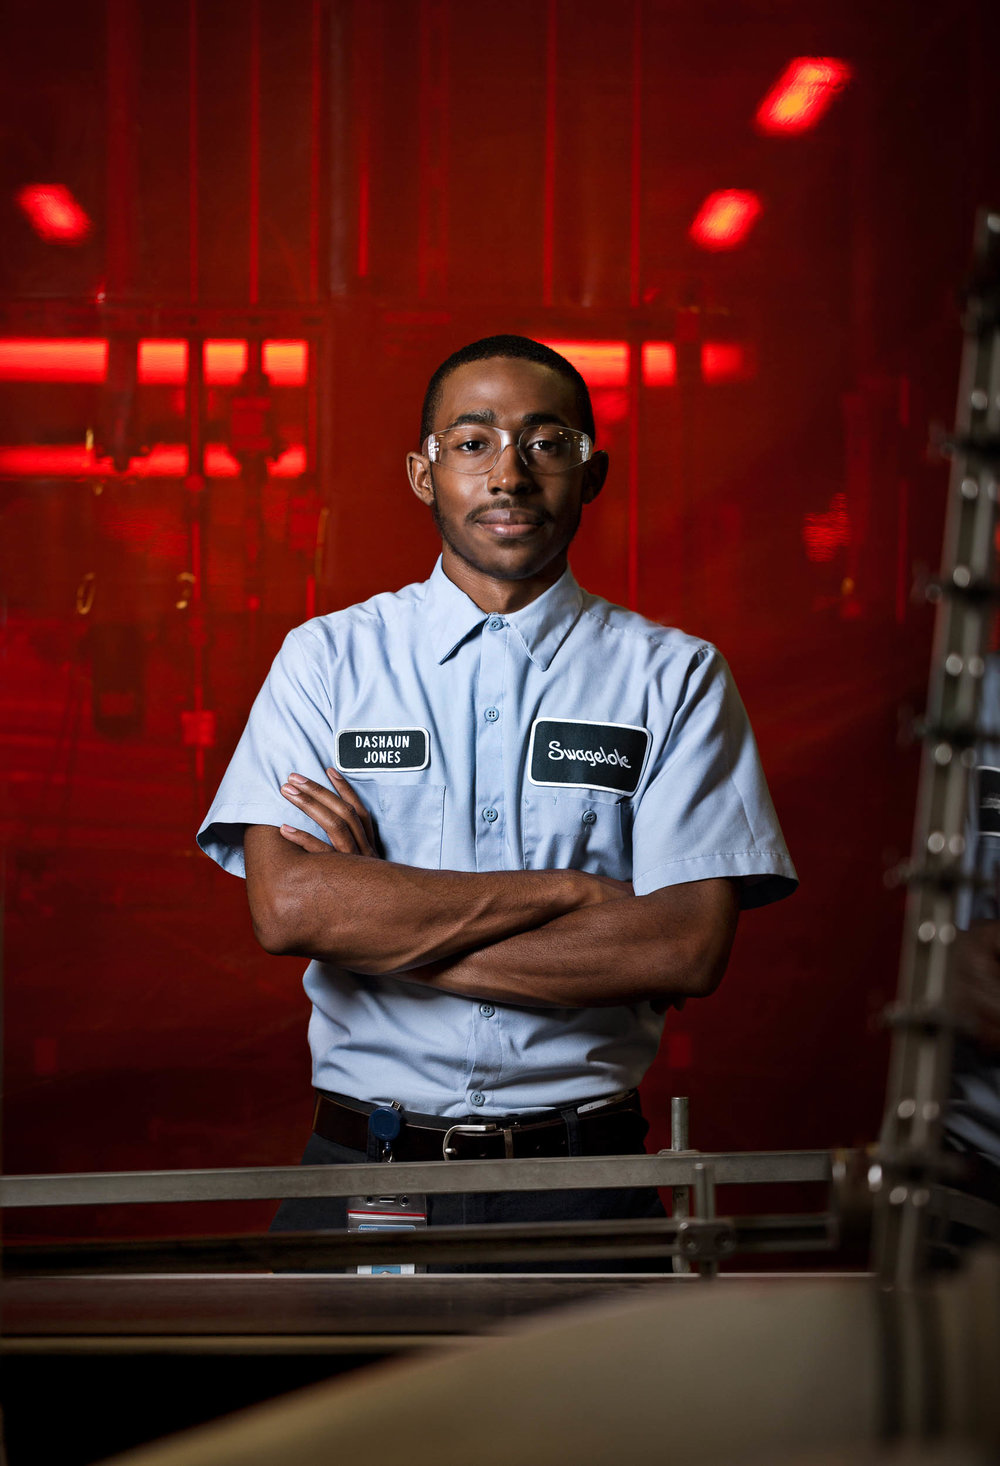 professional photograph of male industrial worker